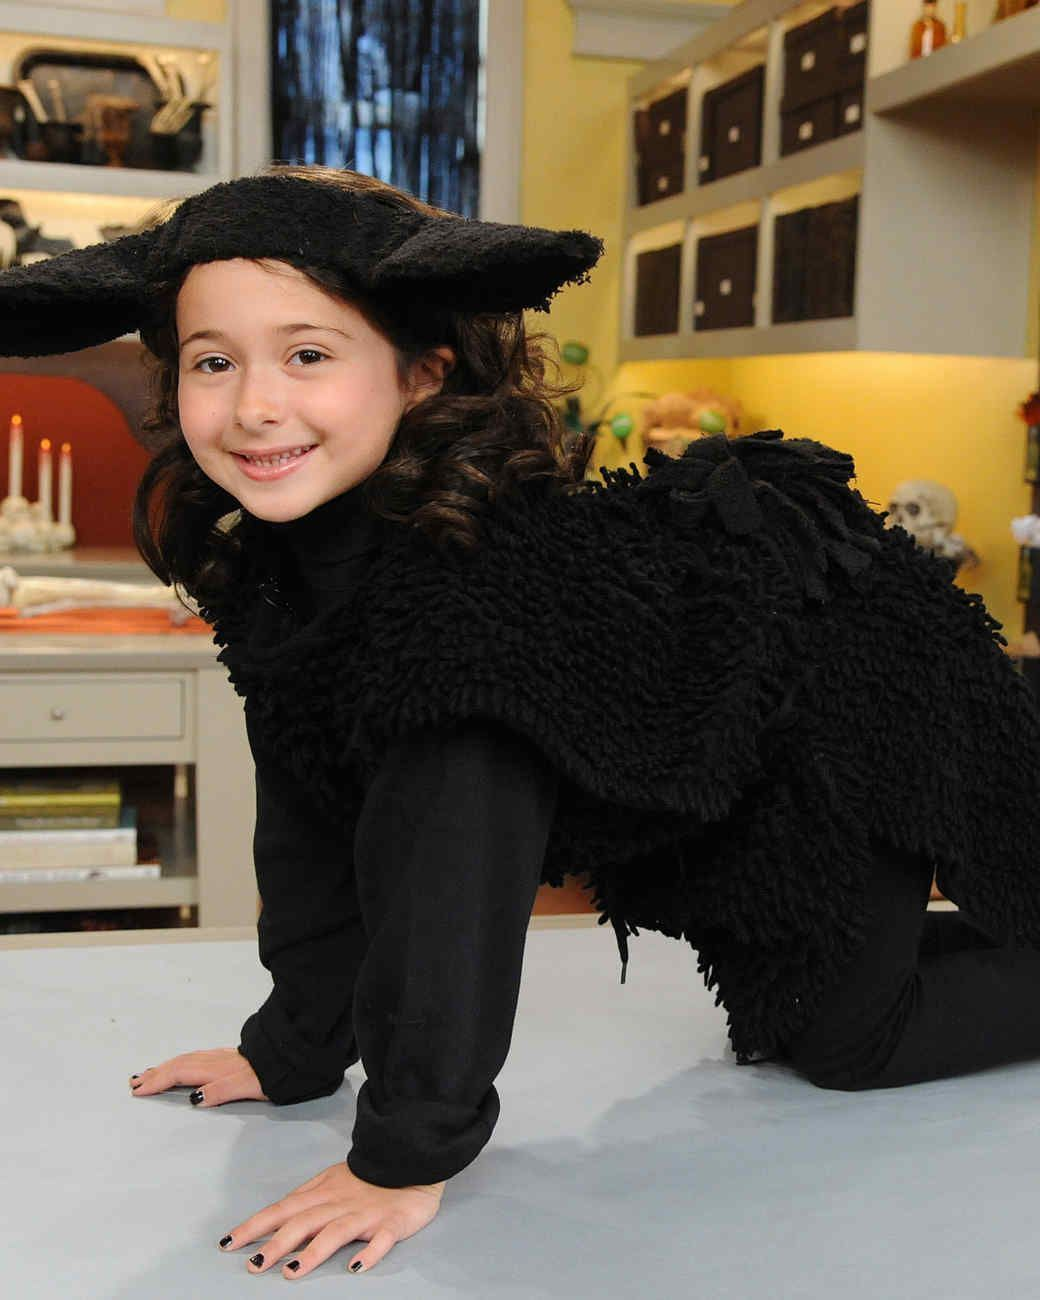 Black Sheep Costume #sheepcostume Black Sheep Costume & Video | Martha Stewart #sheepcostume Black Sheep Costume #sheepcostume Black Sheep Costume & Video | Martha Stewart #sheep #fashion #sheepcostume Black Sheep Costume #sheepcostume Black Sheep Costume & Video | Martha Stewart #sheepcostume Black Sheep Costume #sheepcostume Black Sheep Costume & Video | Martha Stewart #sheep #fashion #sheepcostume